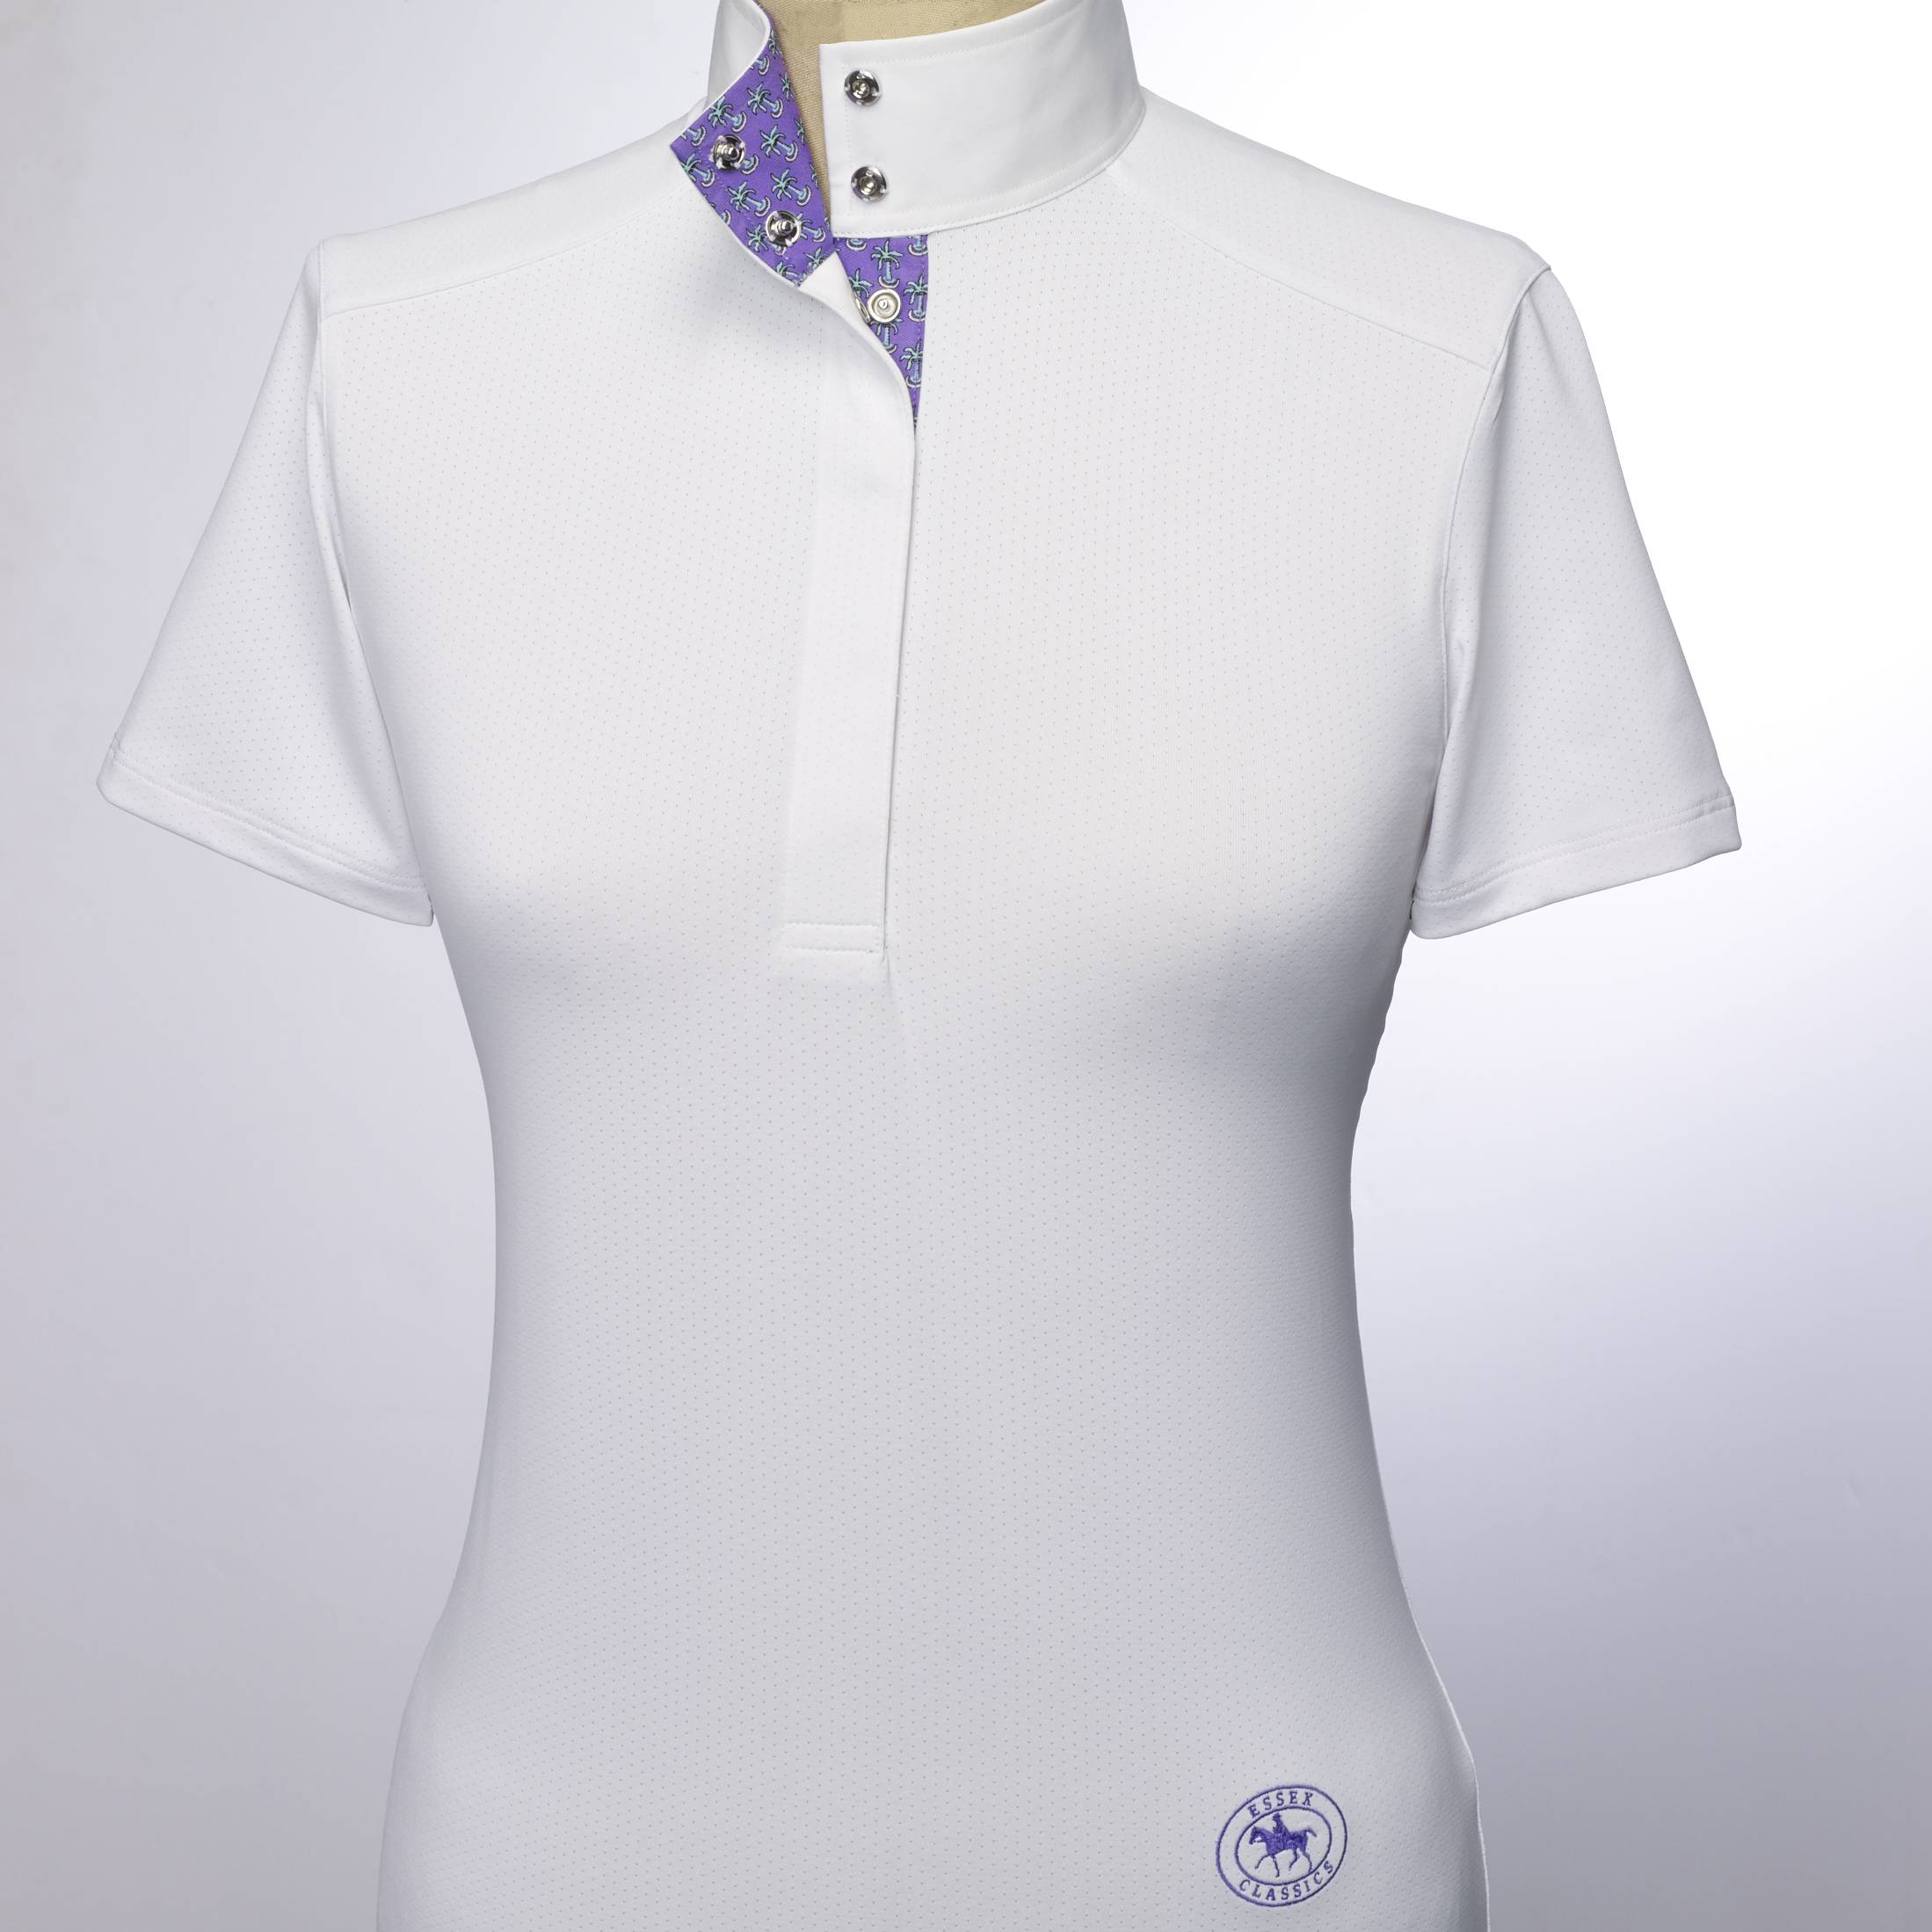 Essex Classics Palma Euro Short Sleeves Talent Yarn Shirt - Ladies